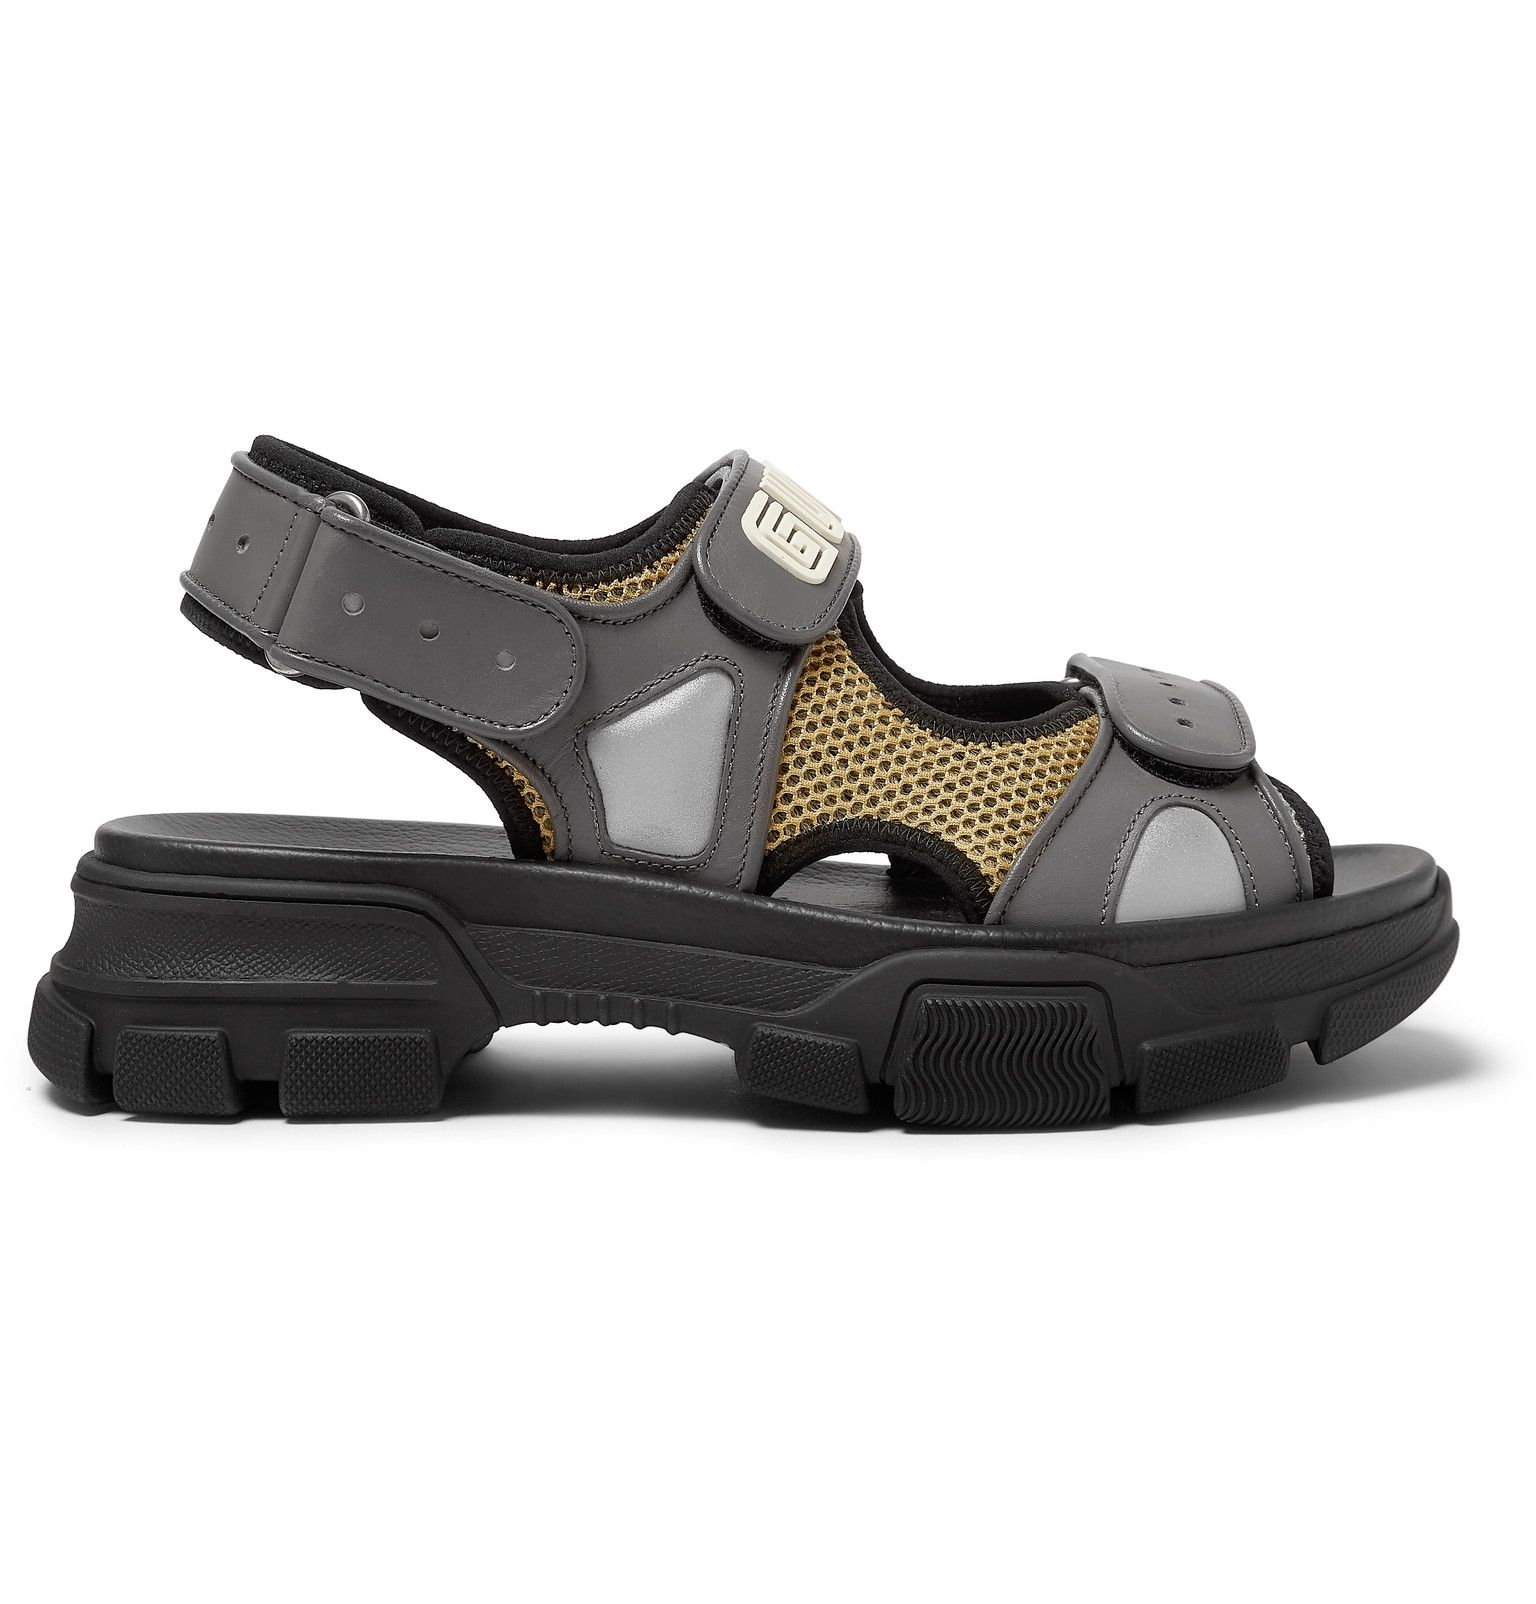 Black Leather And Mesh Sandals Gucci Gucci Leather Sandals Gucci